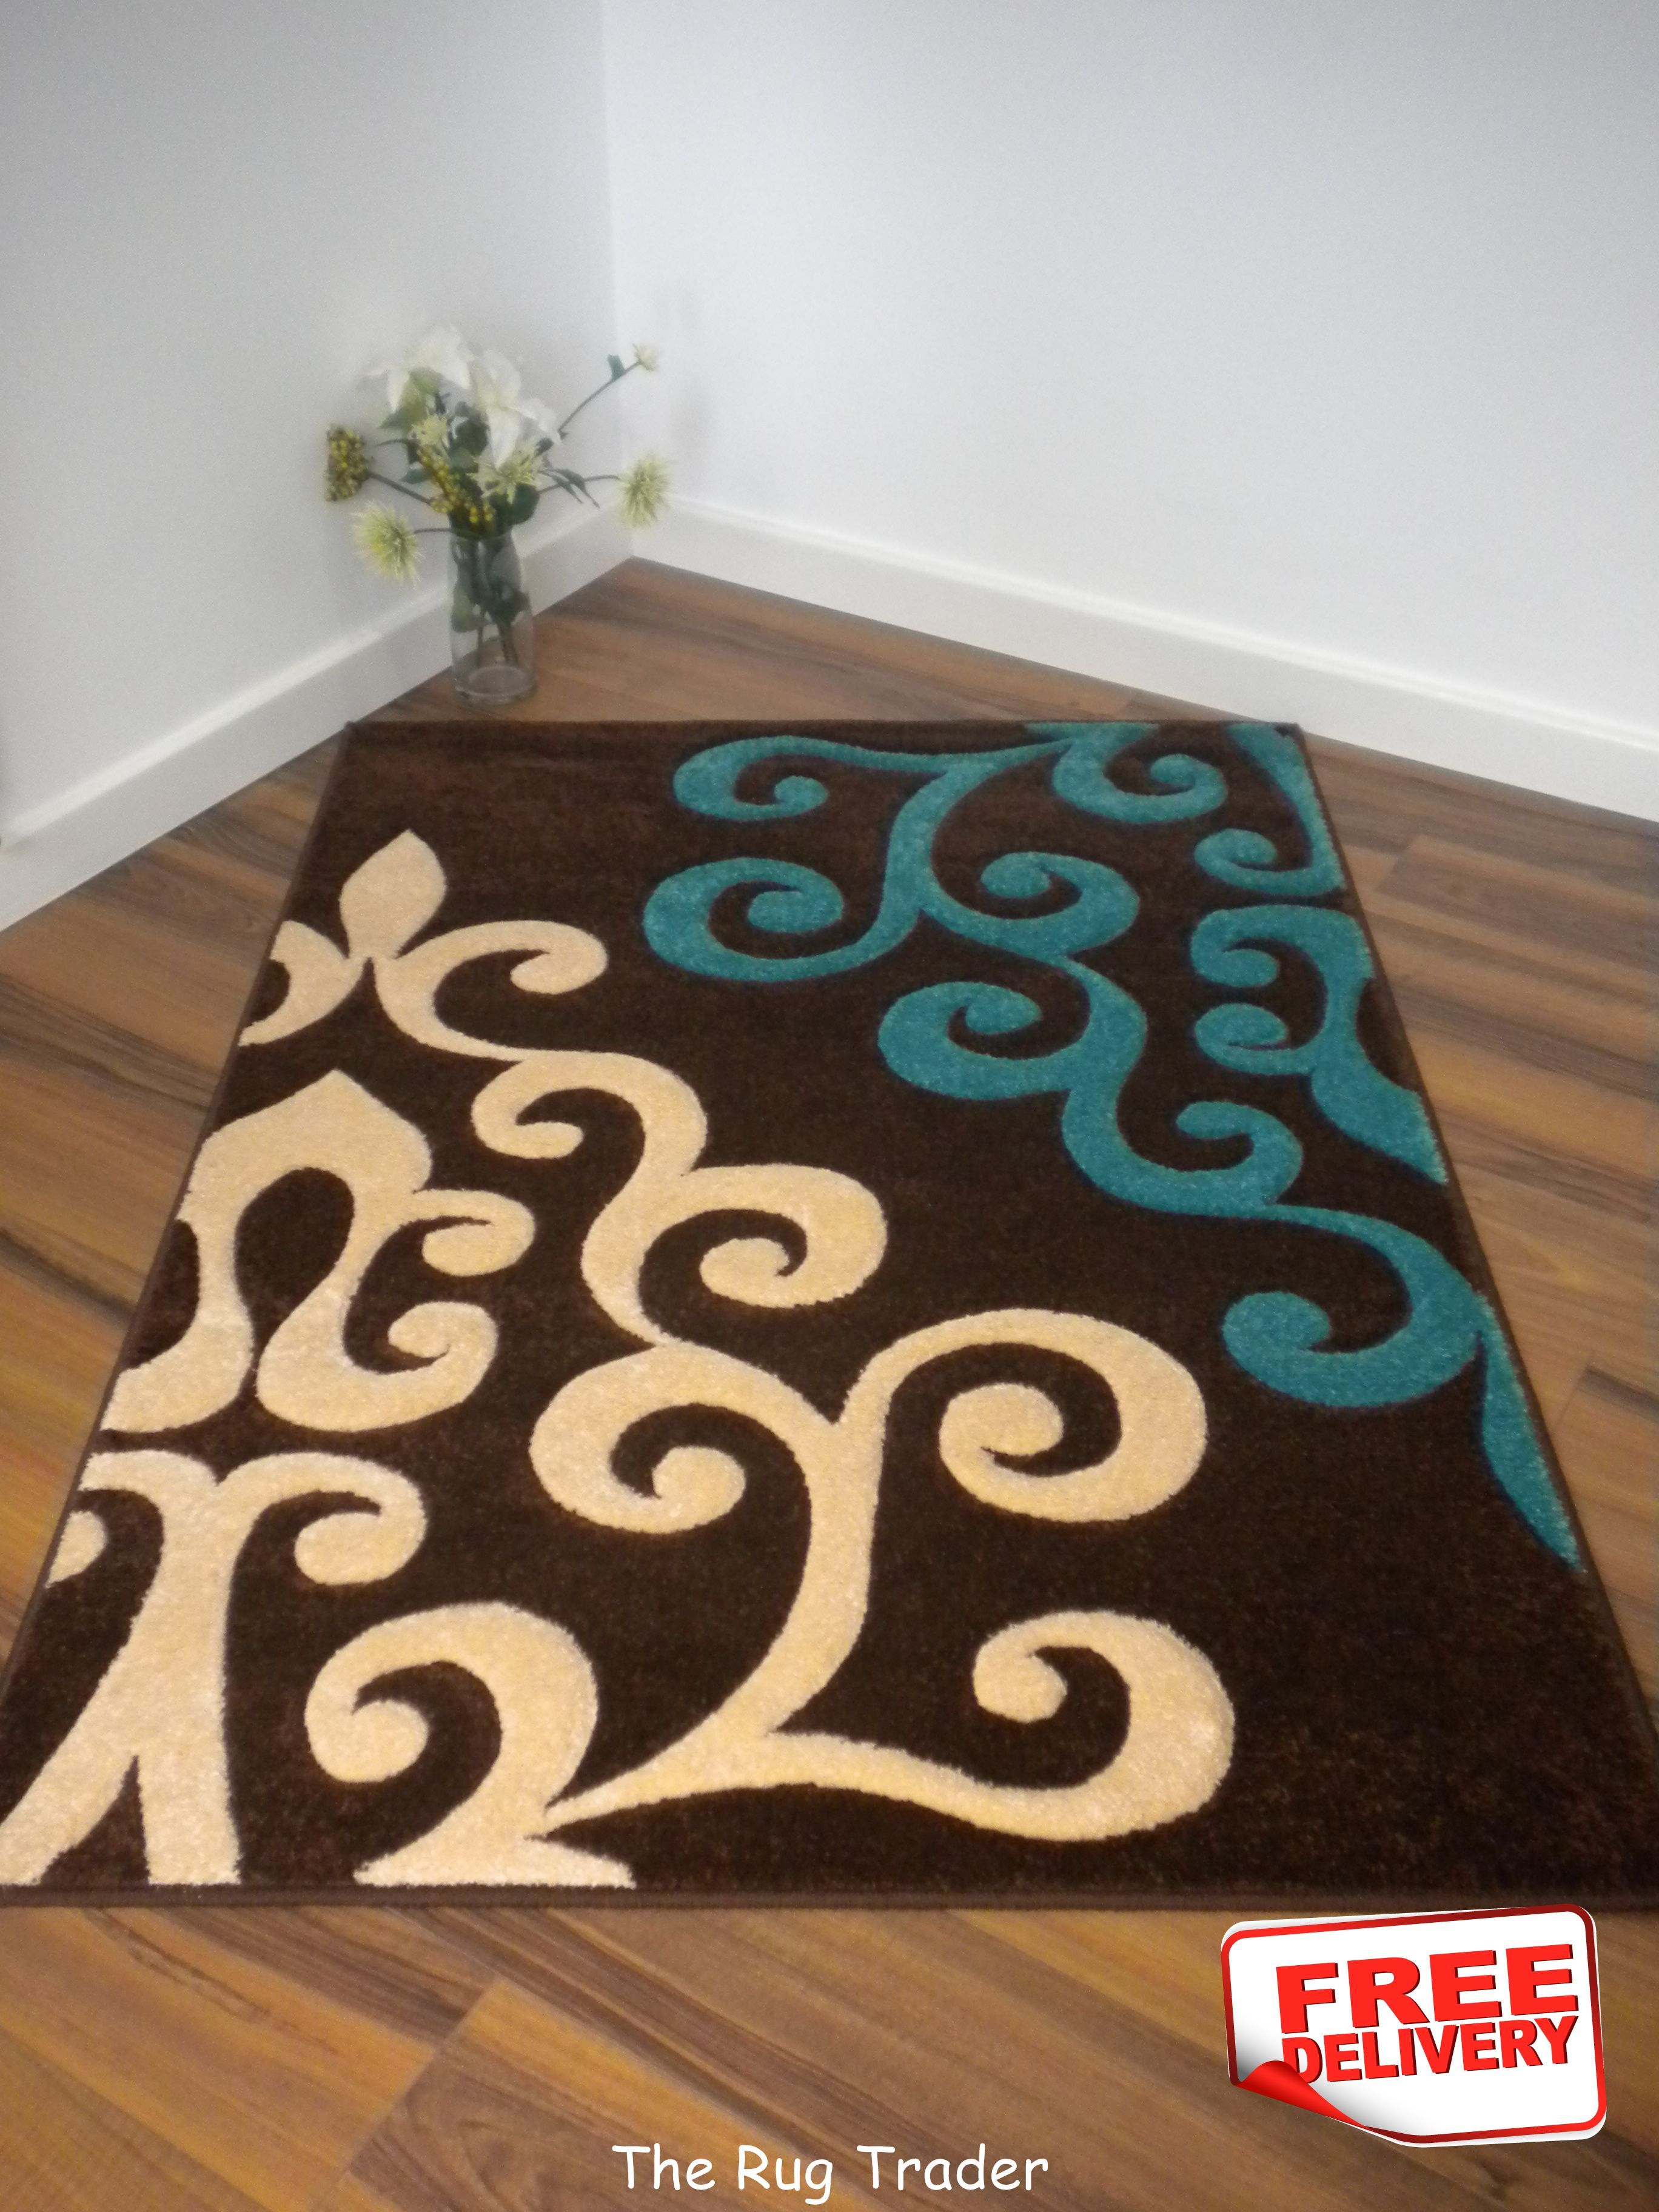 Pinned for the idea to make a canvas floor rug with oversized